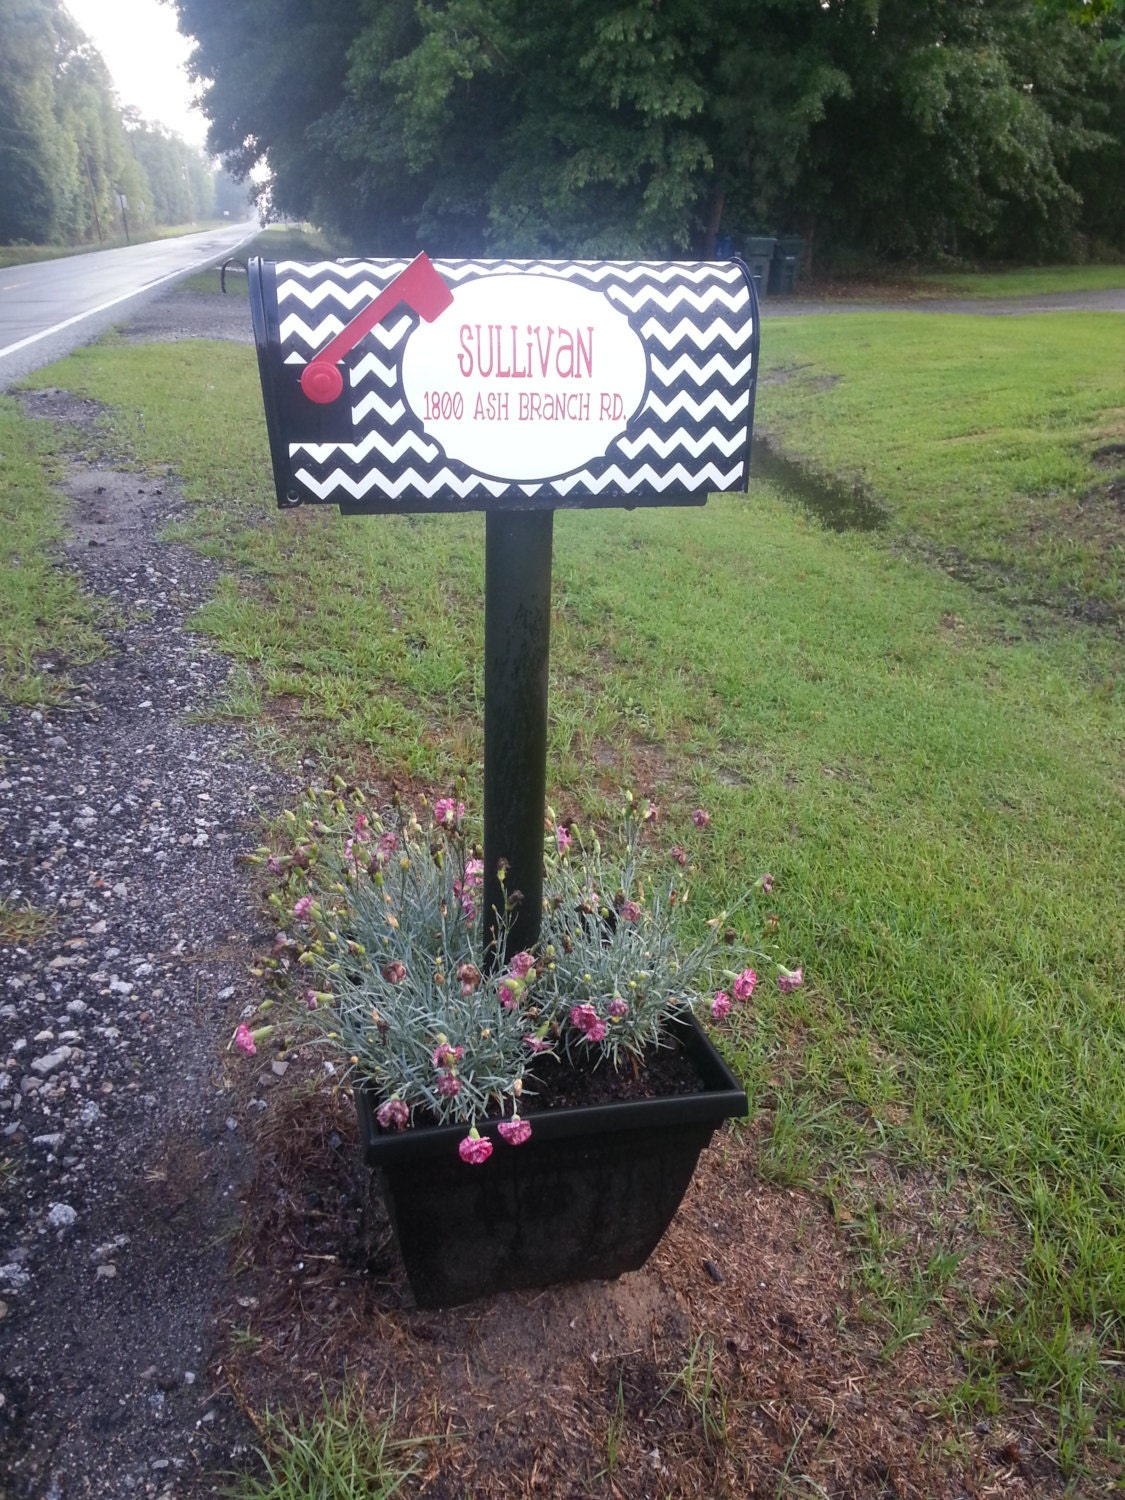 Personalized chevron magnetic mailbox cover black and white - Unique mailbox ideas for your home ...